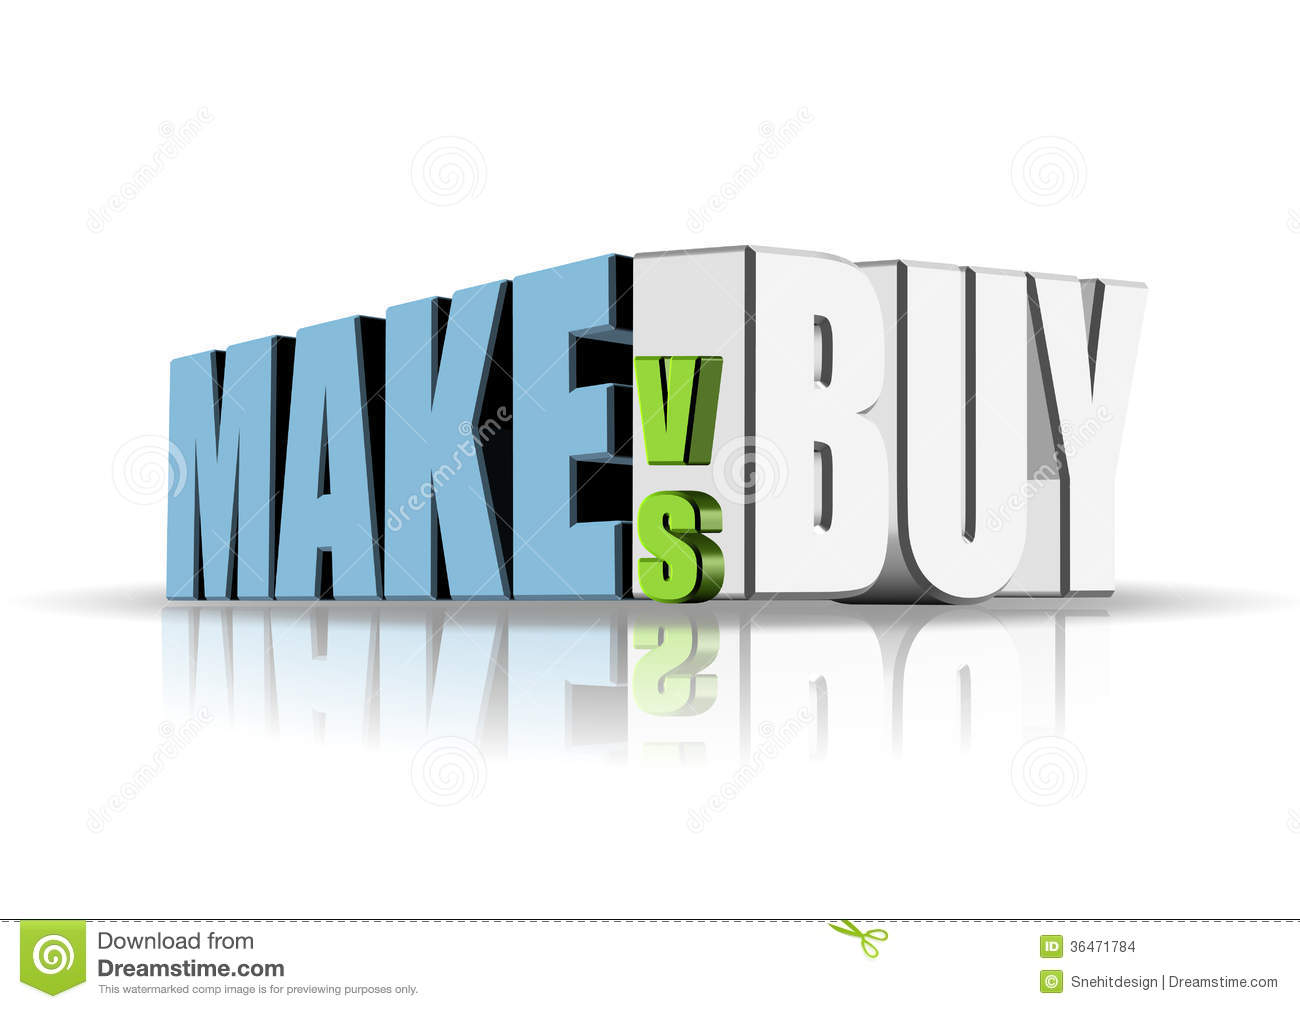 An illustration of make versus buy concept.: www.dreamstime.com/stock-images-make-versus-buy-illustration...